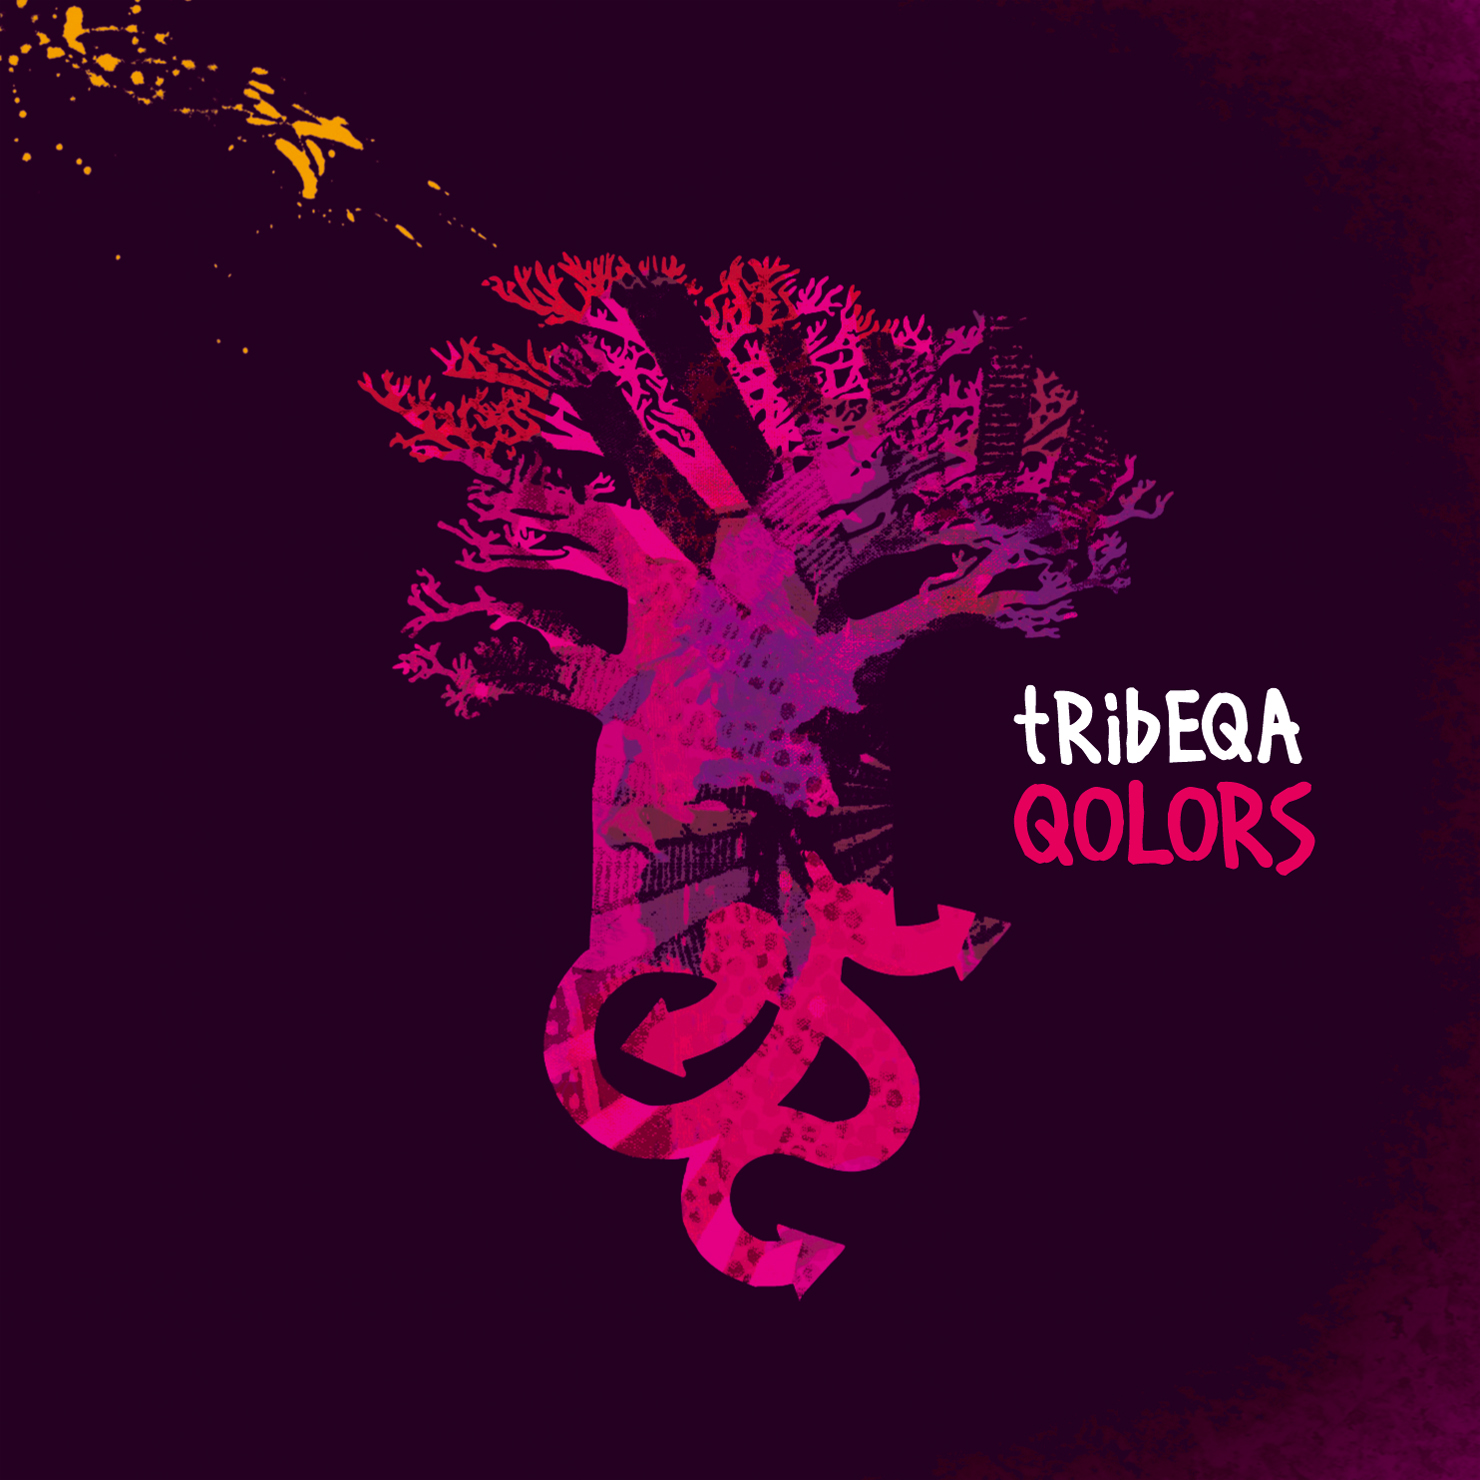 http://underdogrecords.fr/WordPress/wp-content/uploads/2010/01/tribeqa-album-qolors-cover.jpg